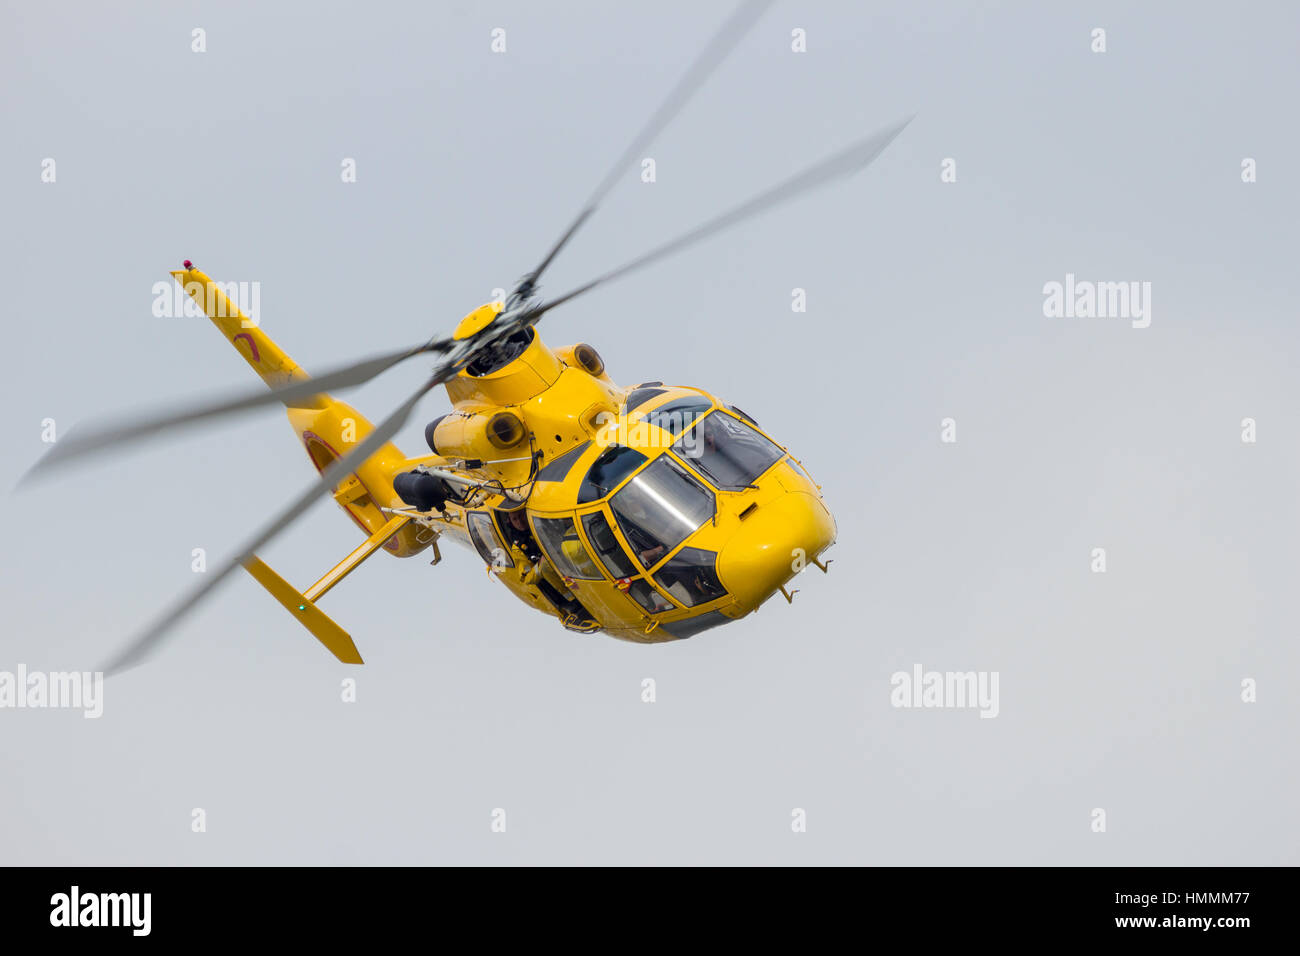 ROTTERDAM, NETHERLANDS - SEP 3, 2016: Eurocopter AS365 N3 Daupin II rescue helicopter from NHV-Noordzee Helikopters. - Stock Image